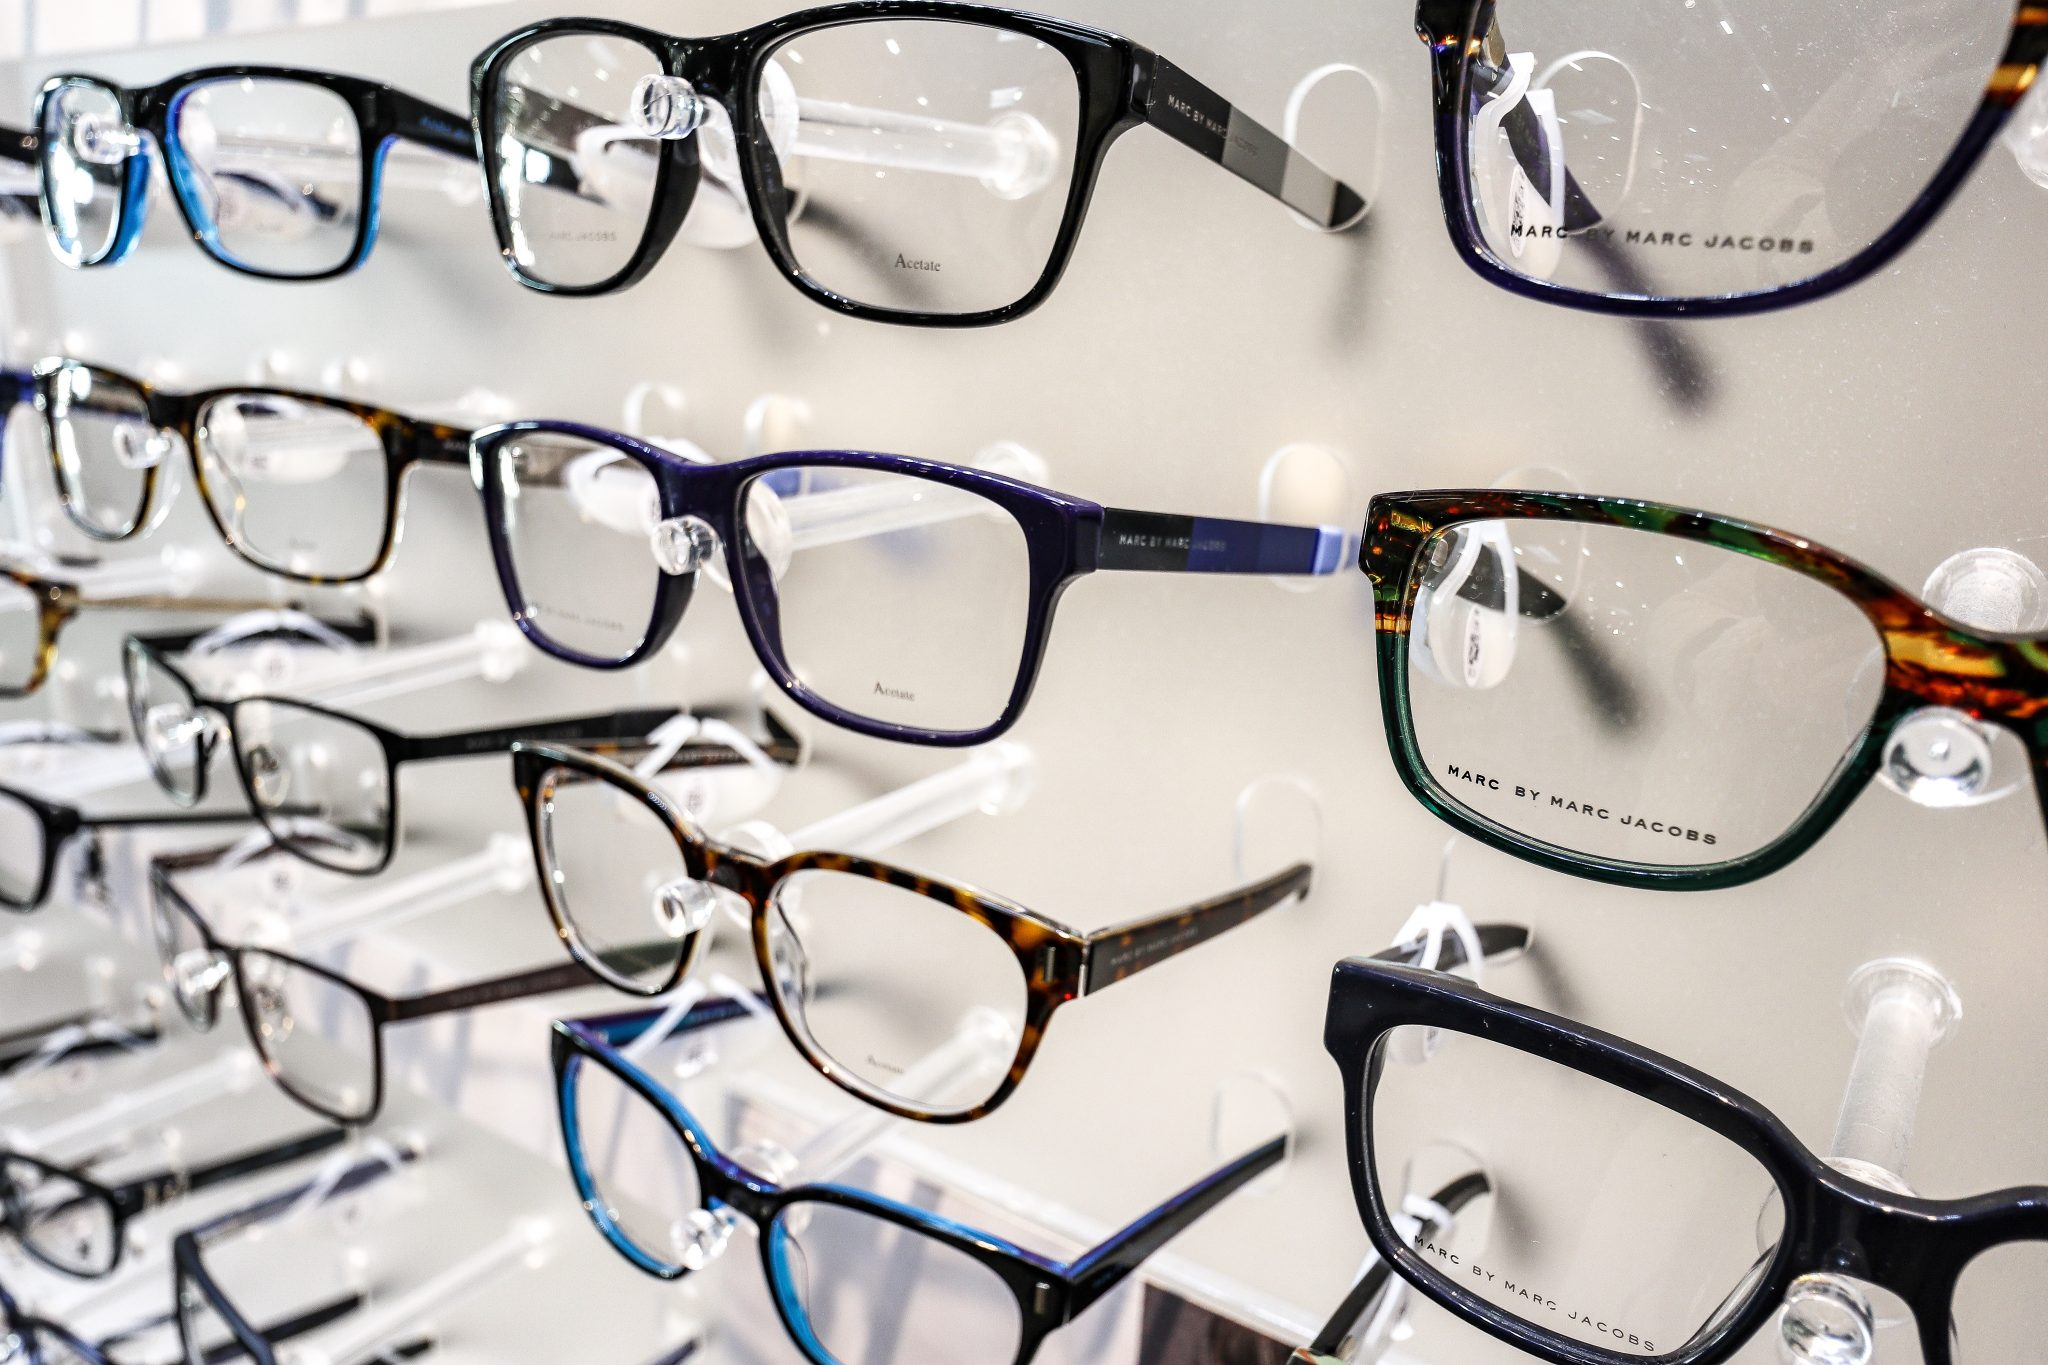 Frames at M&S Opticians, York